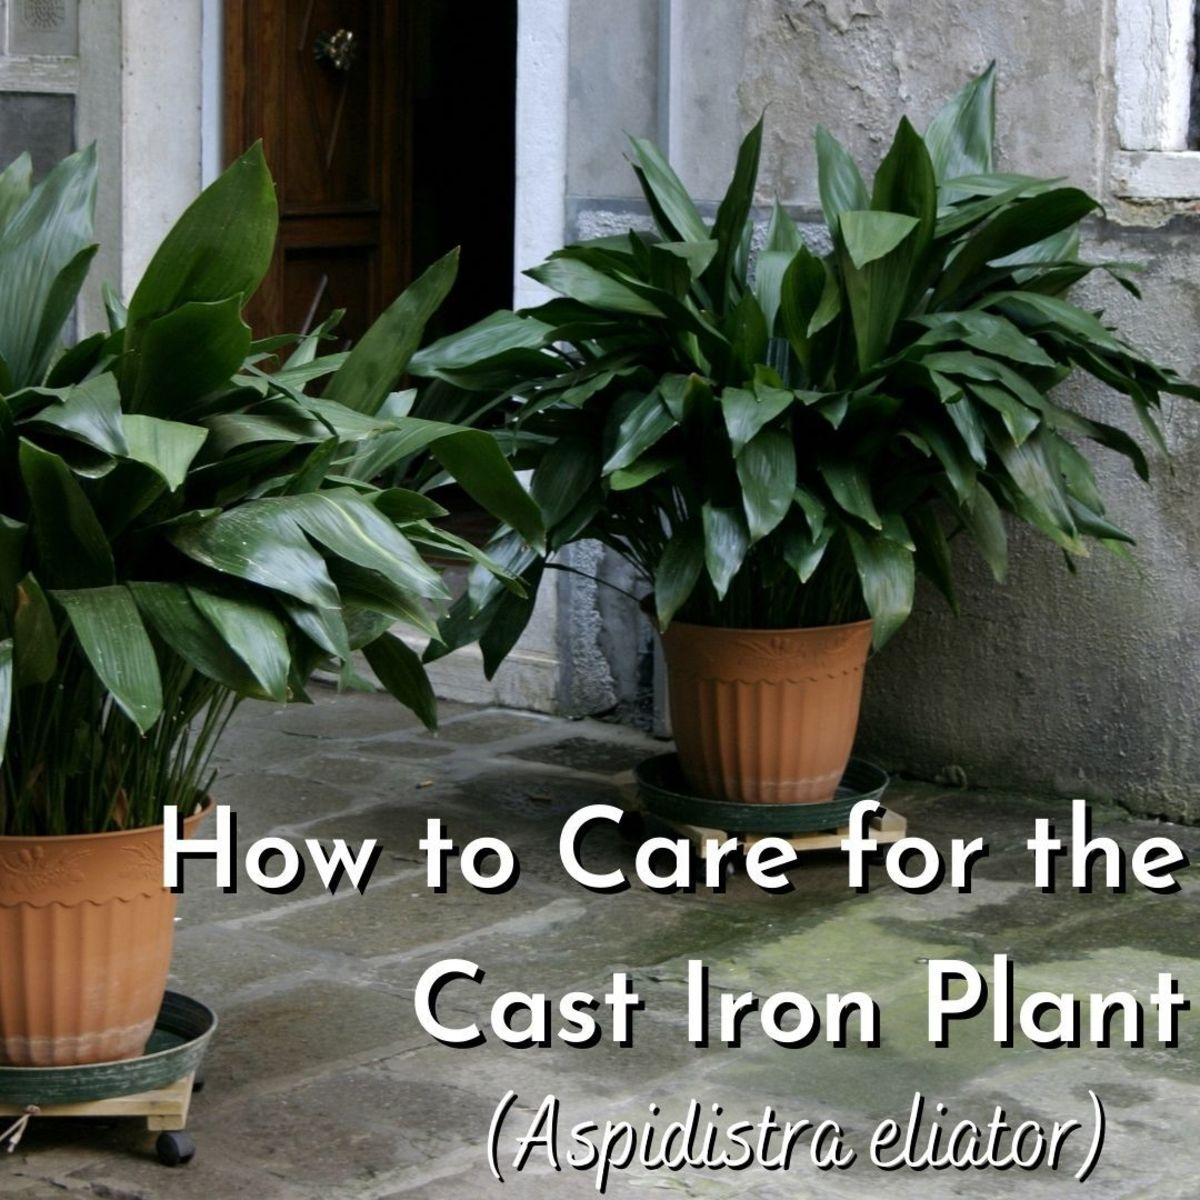 The cast iron plant, or Aspidistra, is typically used as an interior floor plant.